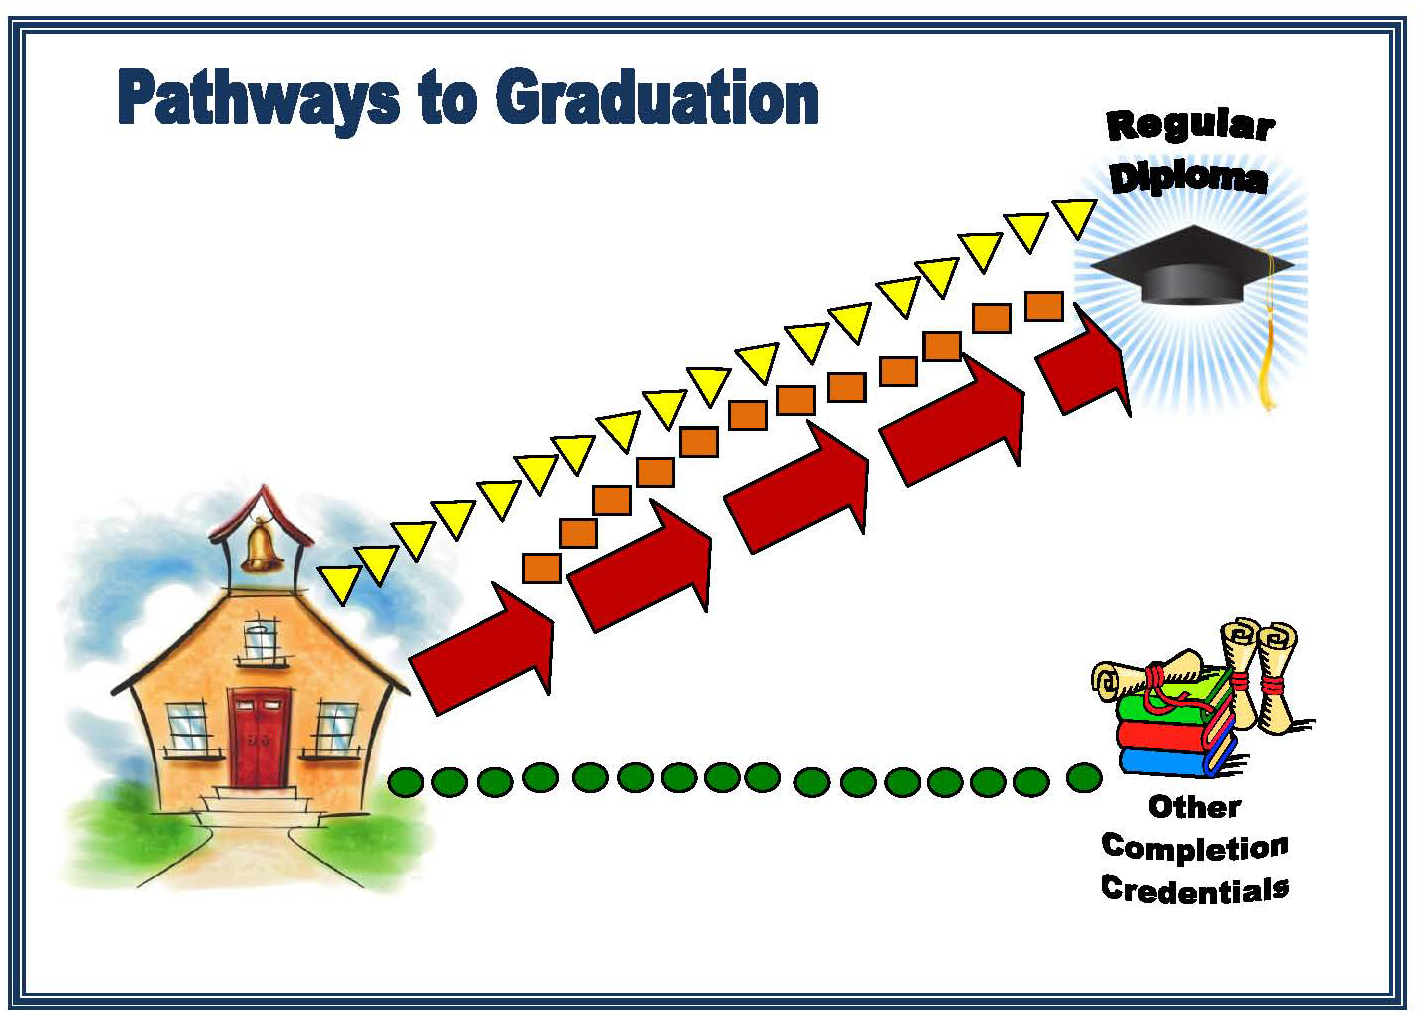 Graphic of pathways to graduation or High School Completion